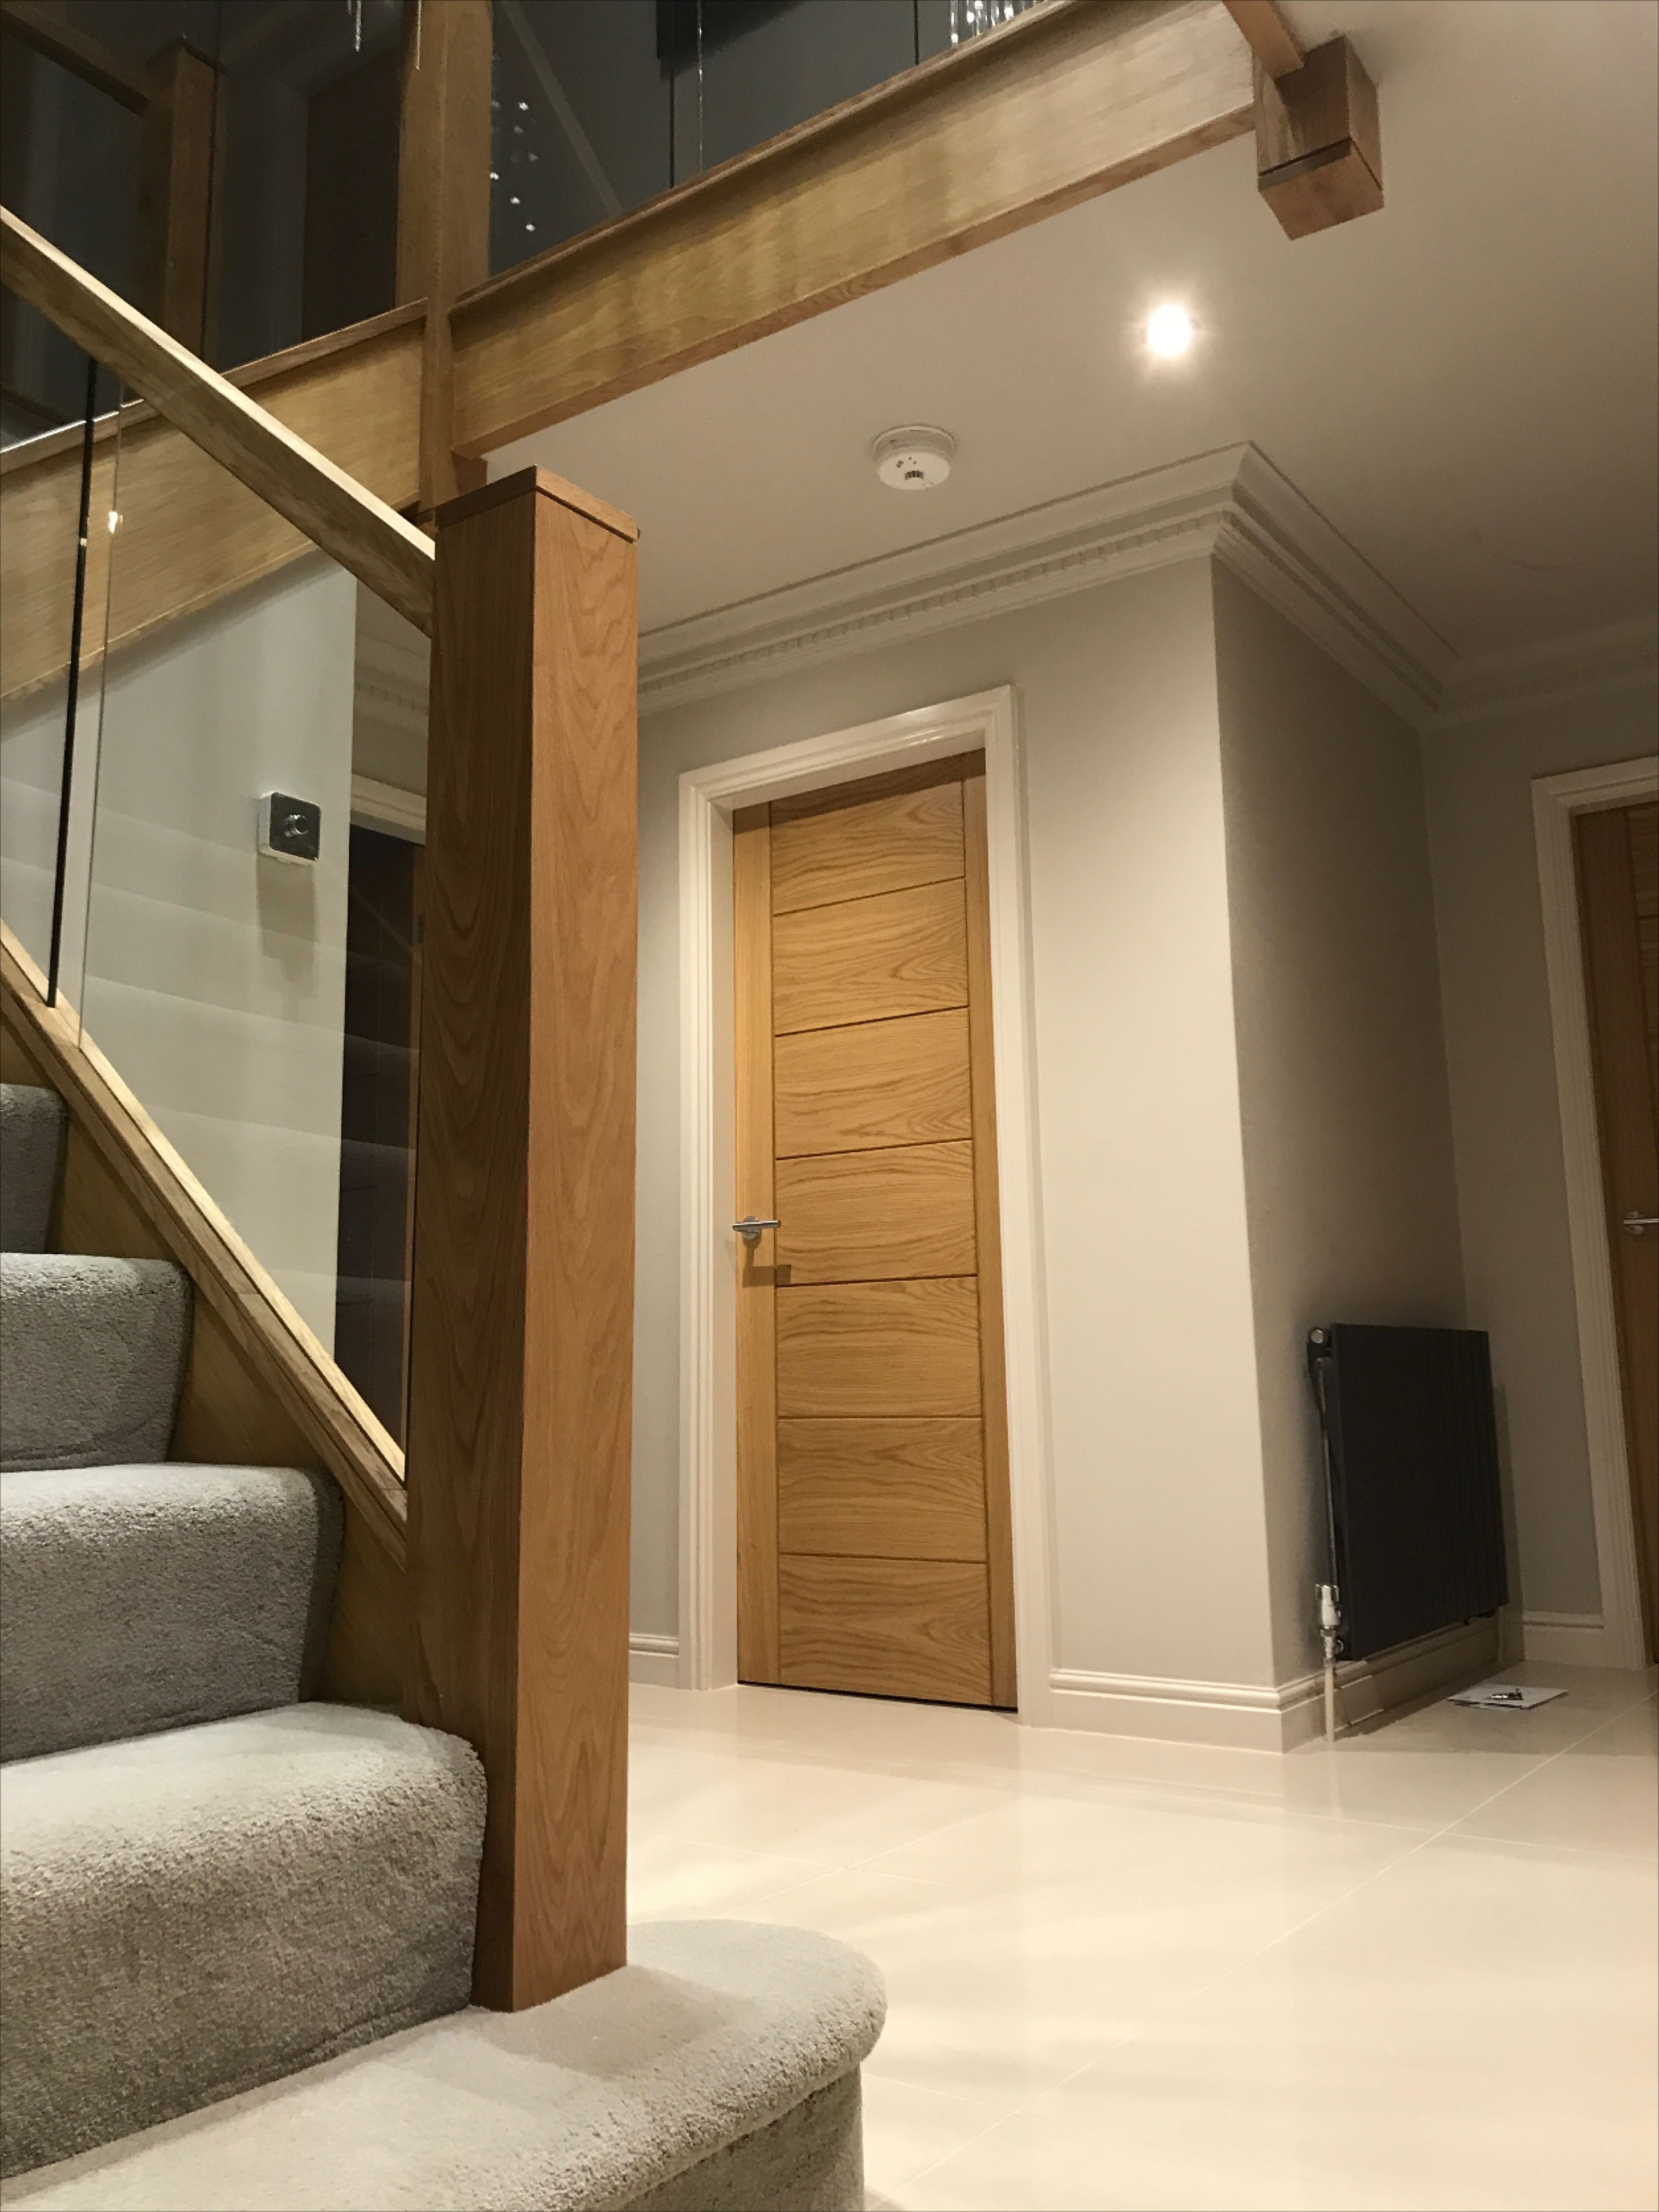 Home renovation including new Oak doors throughout and a Solid Oak staircase refurbishment incorporating toughened glass panels.